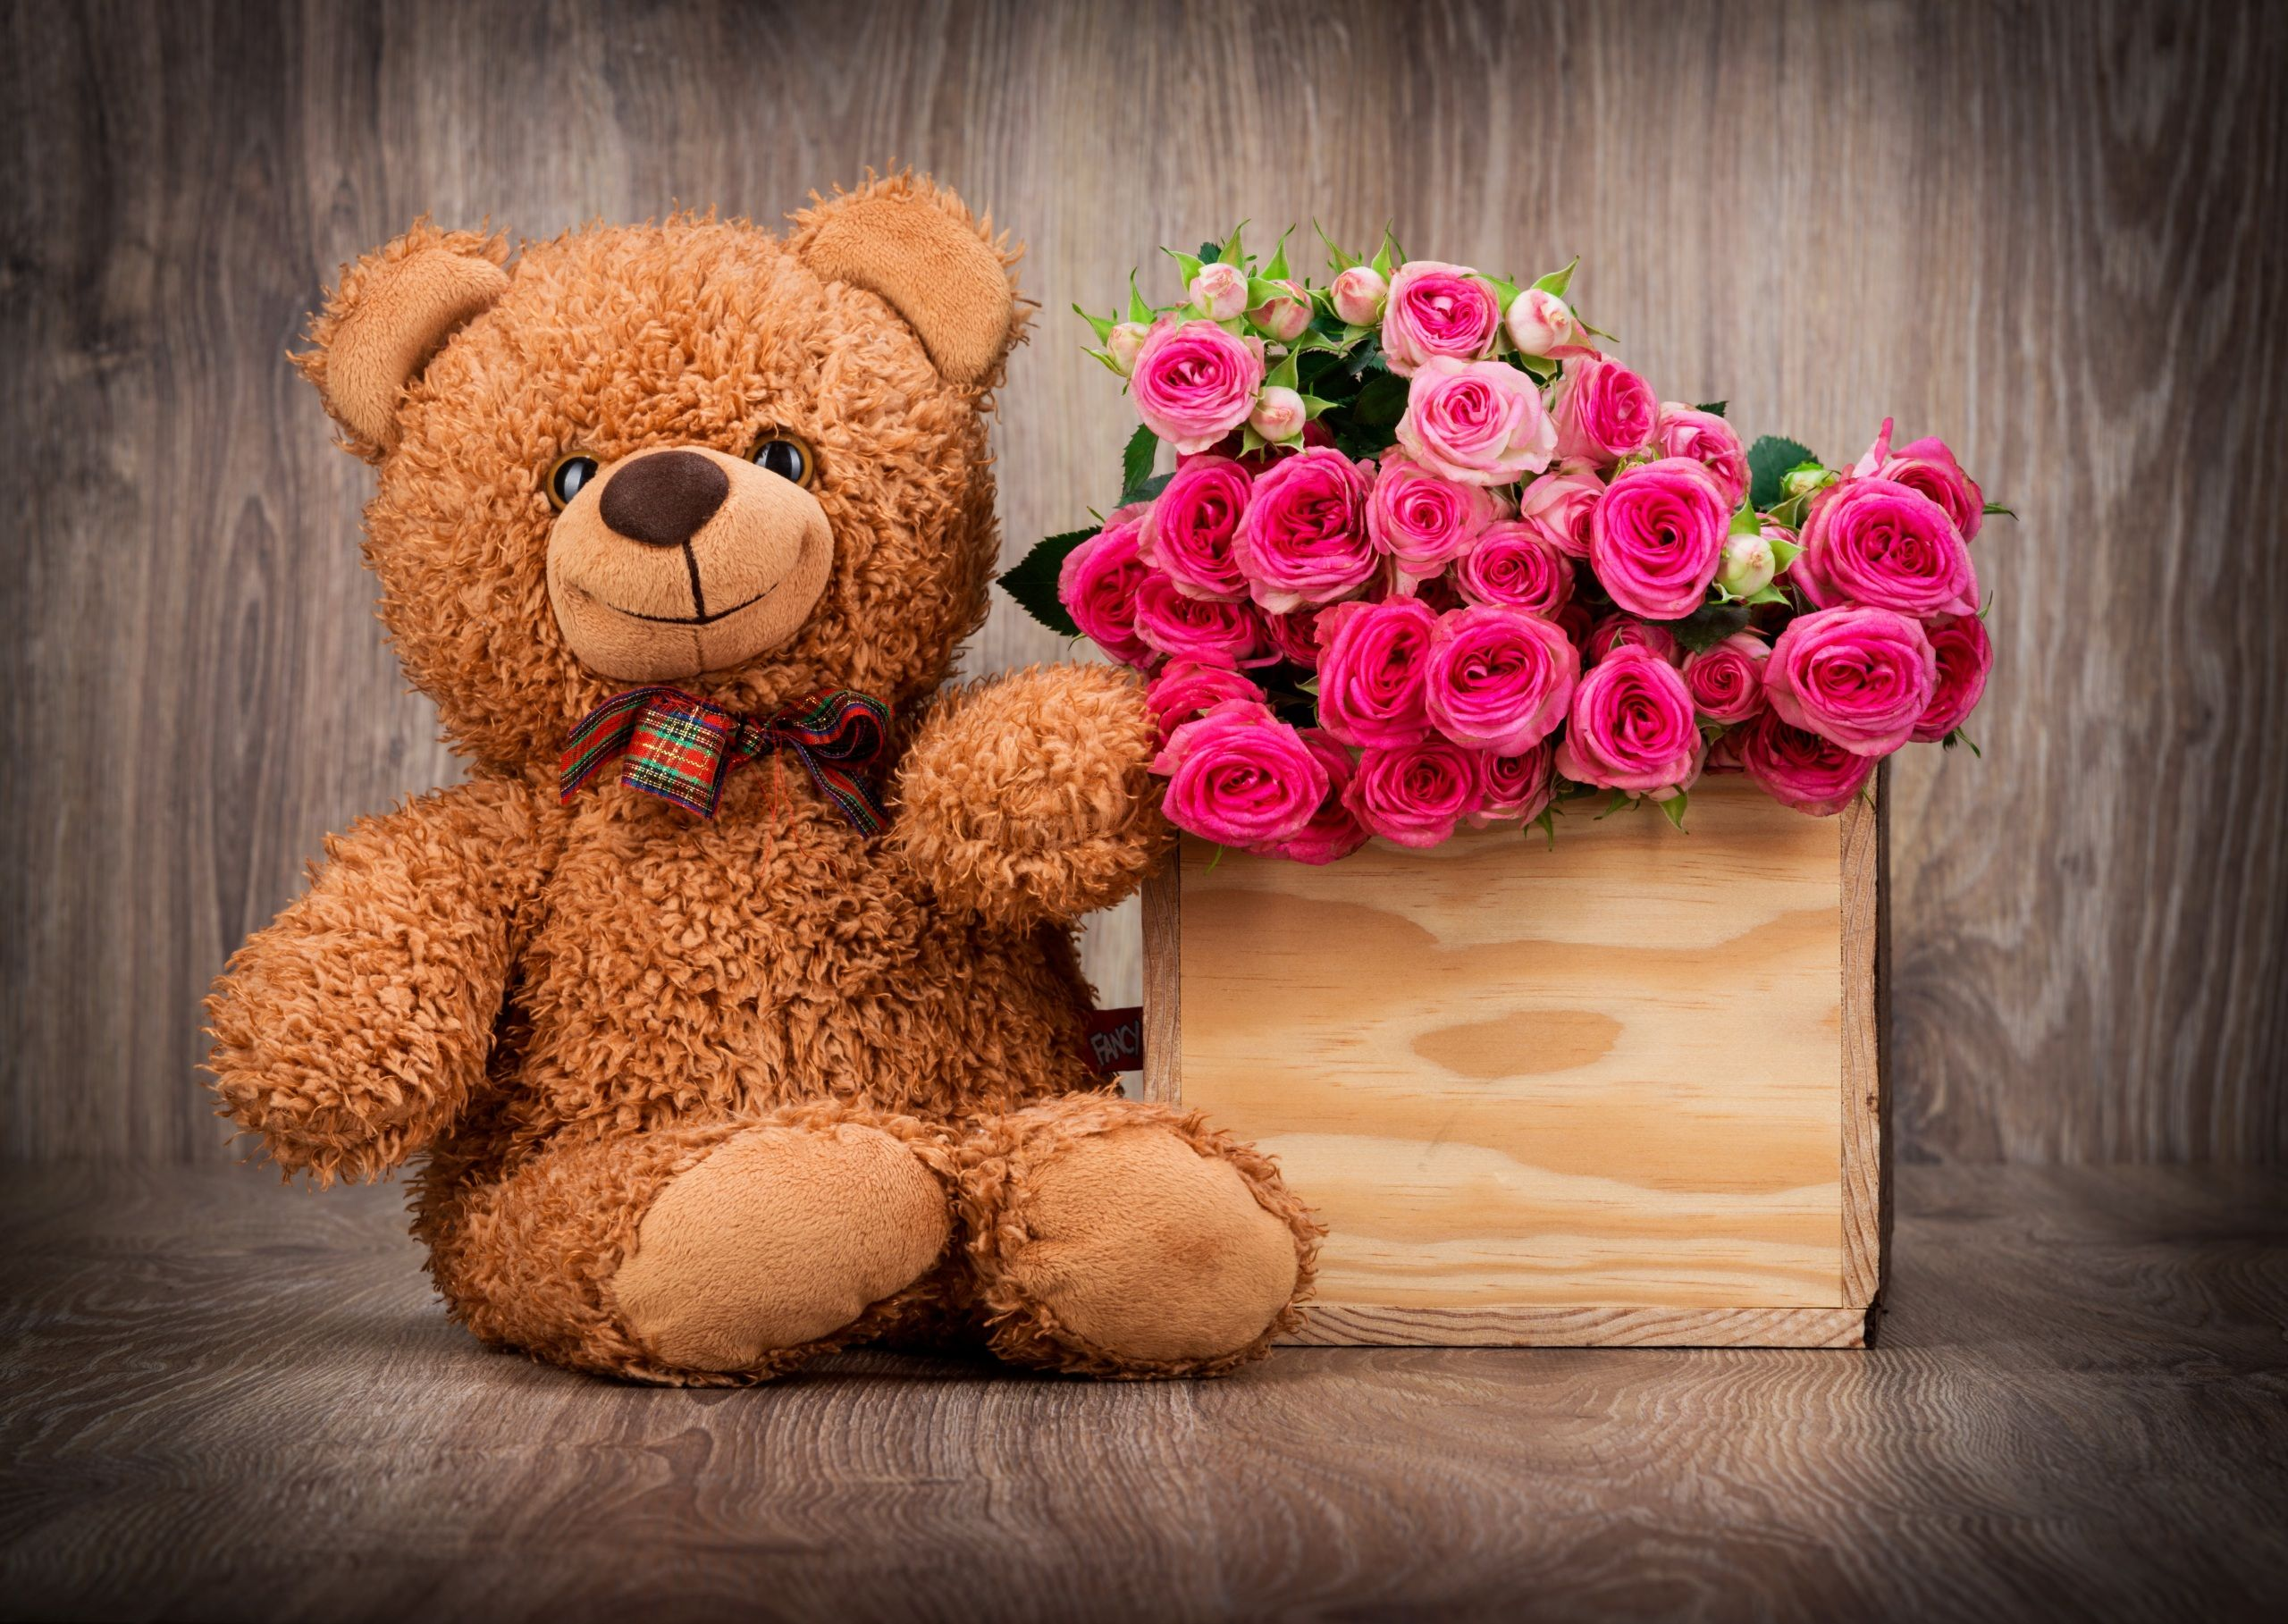 cute teddy bear wallpaper with pink roses in box | hd wallpapers for